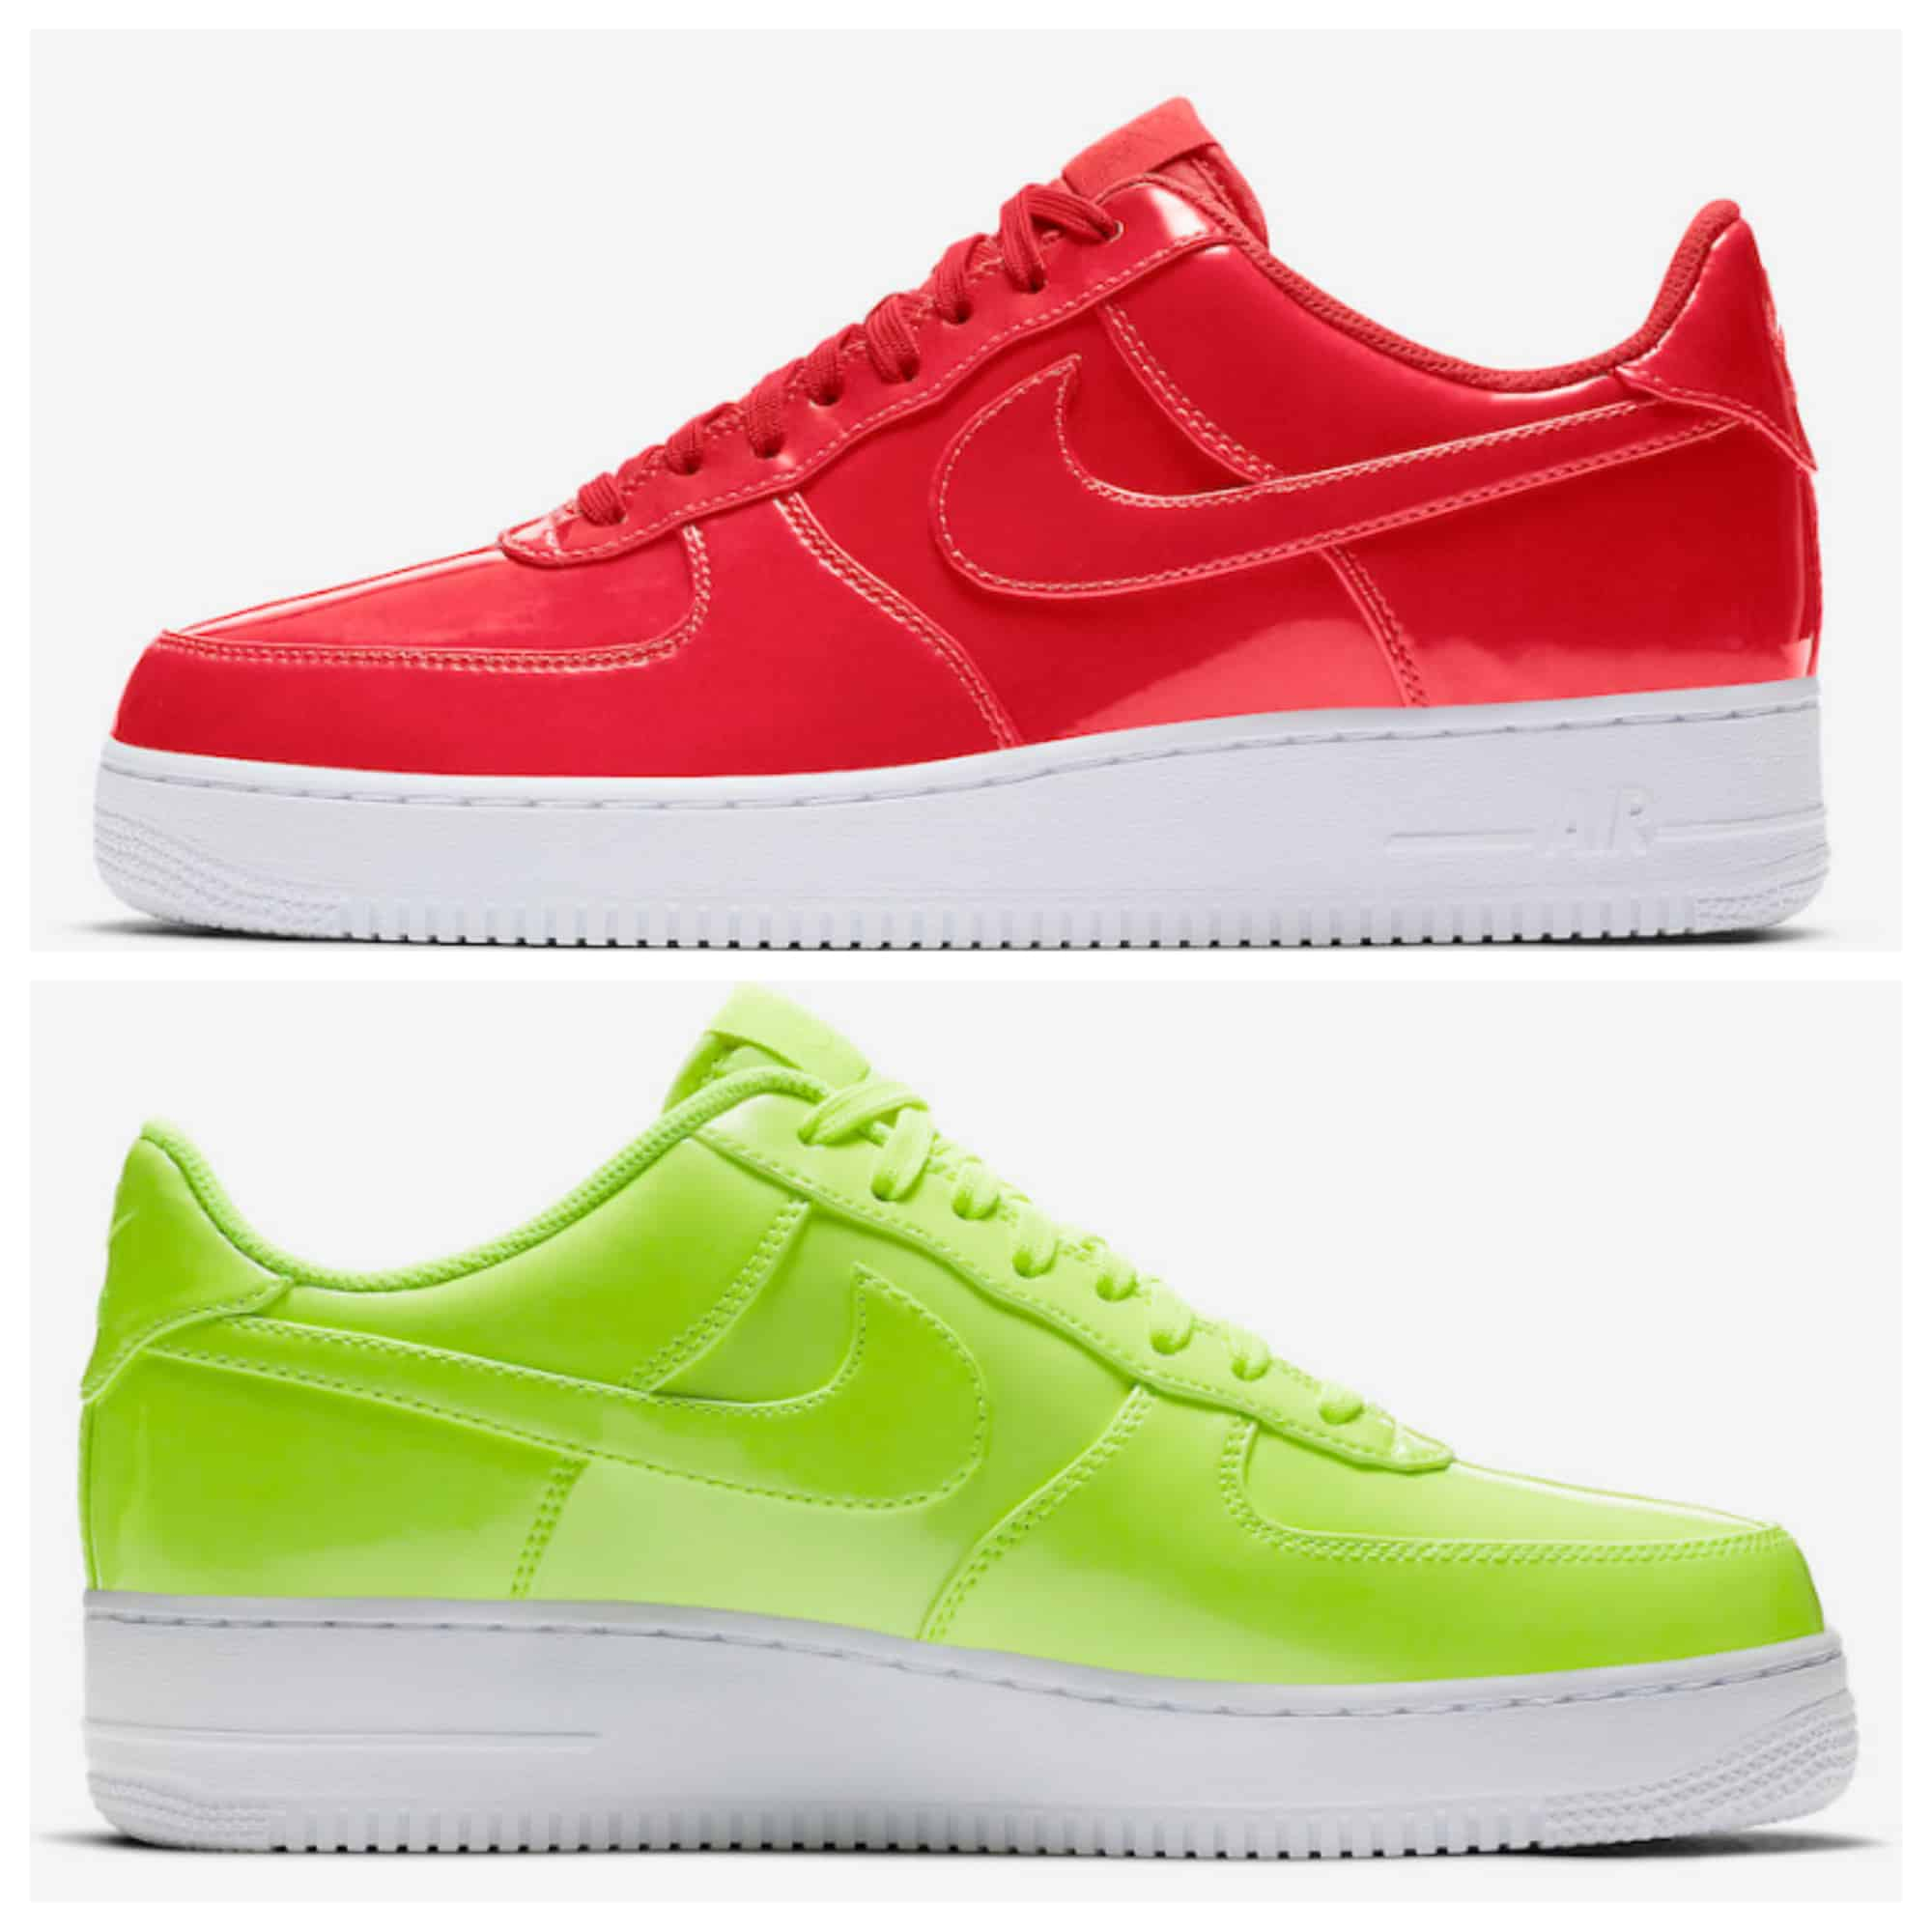 image  Air Force 1 Low Patent Leather